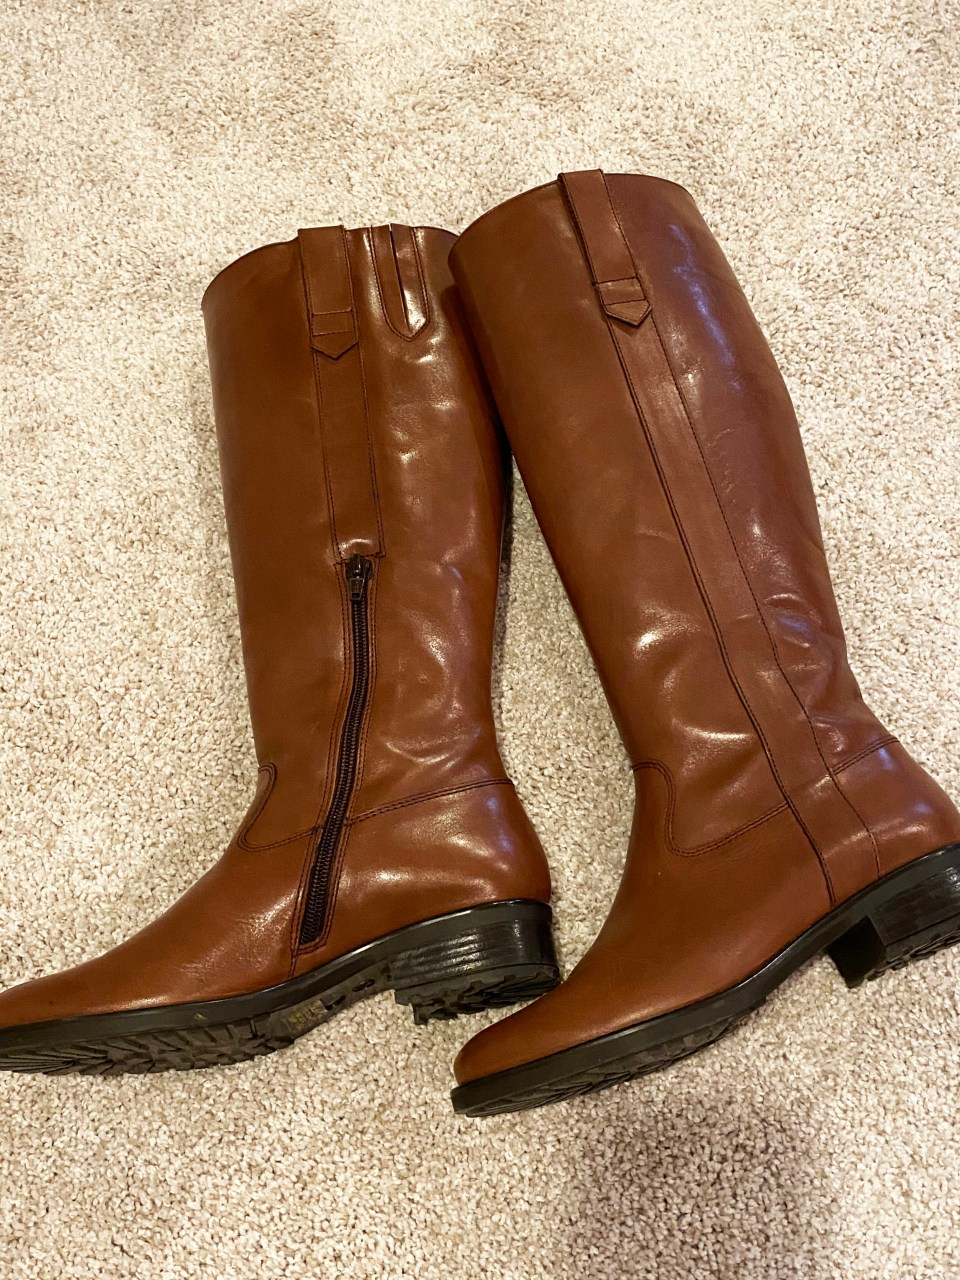 Halo Riding Boots